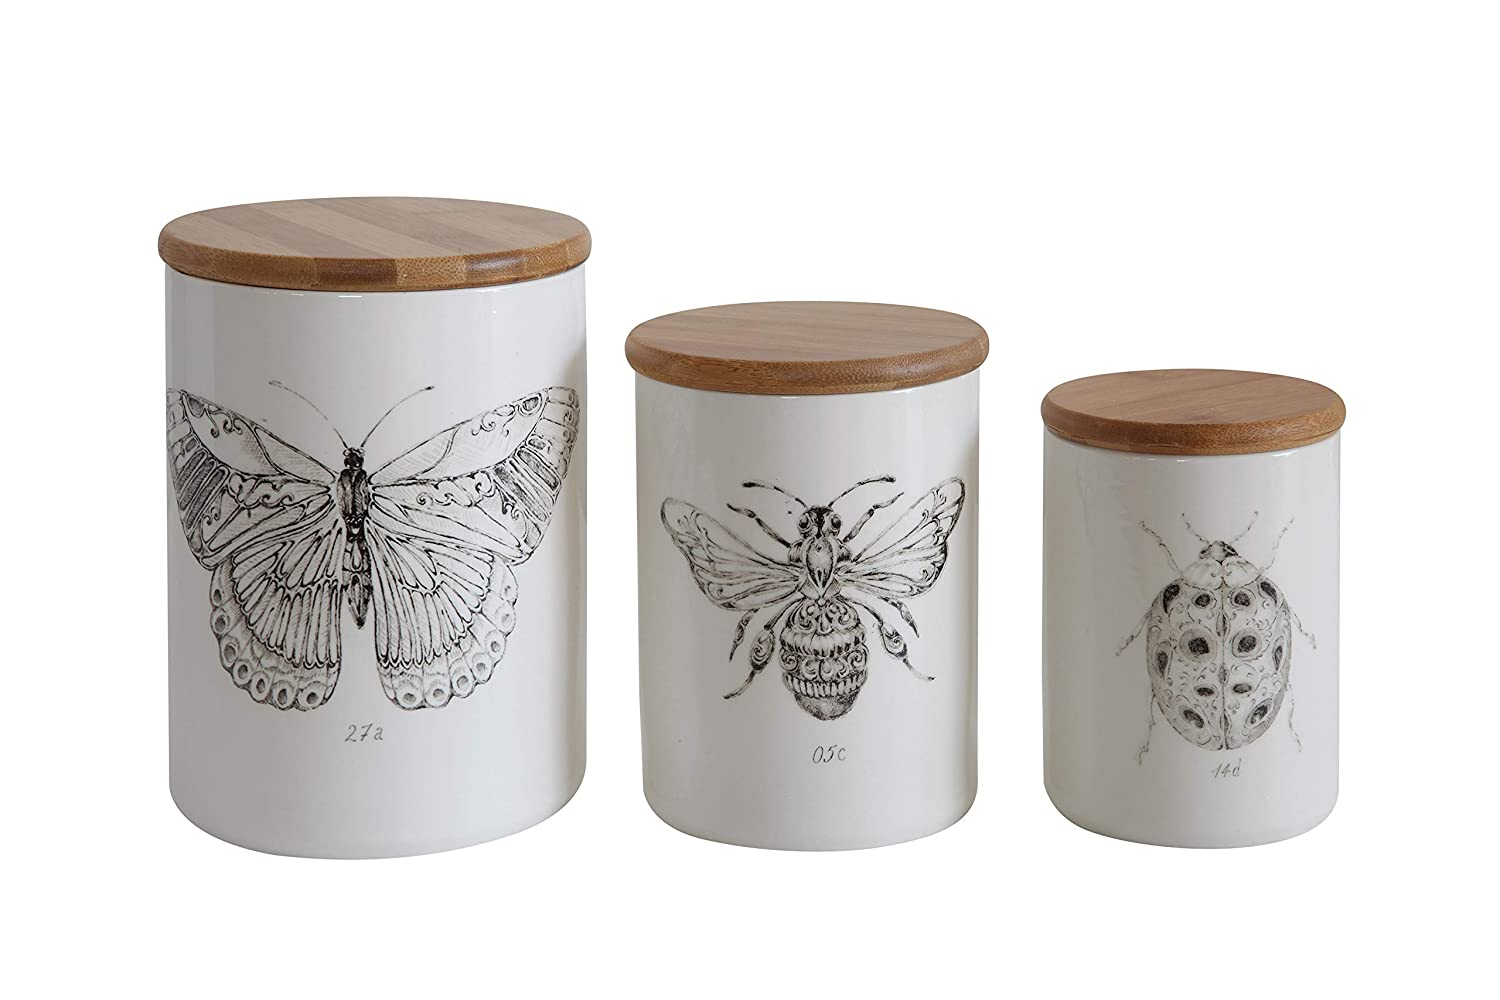 Stoneware jar with bee image for French farmhouse style spaces and European country decorating.